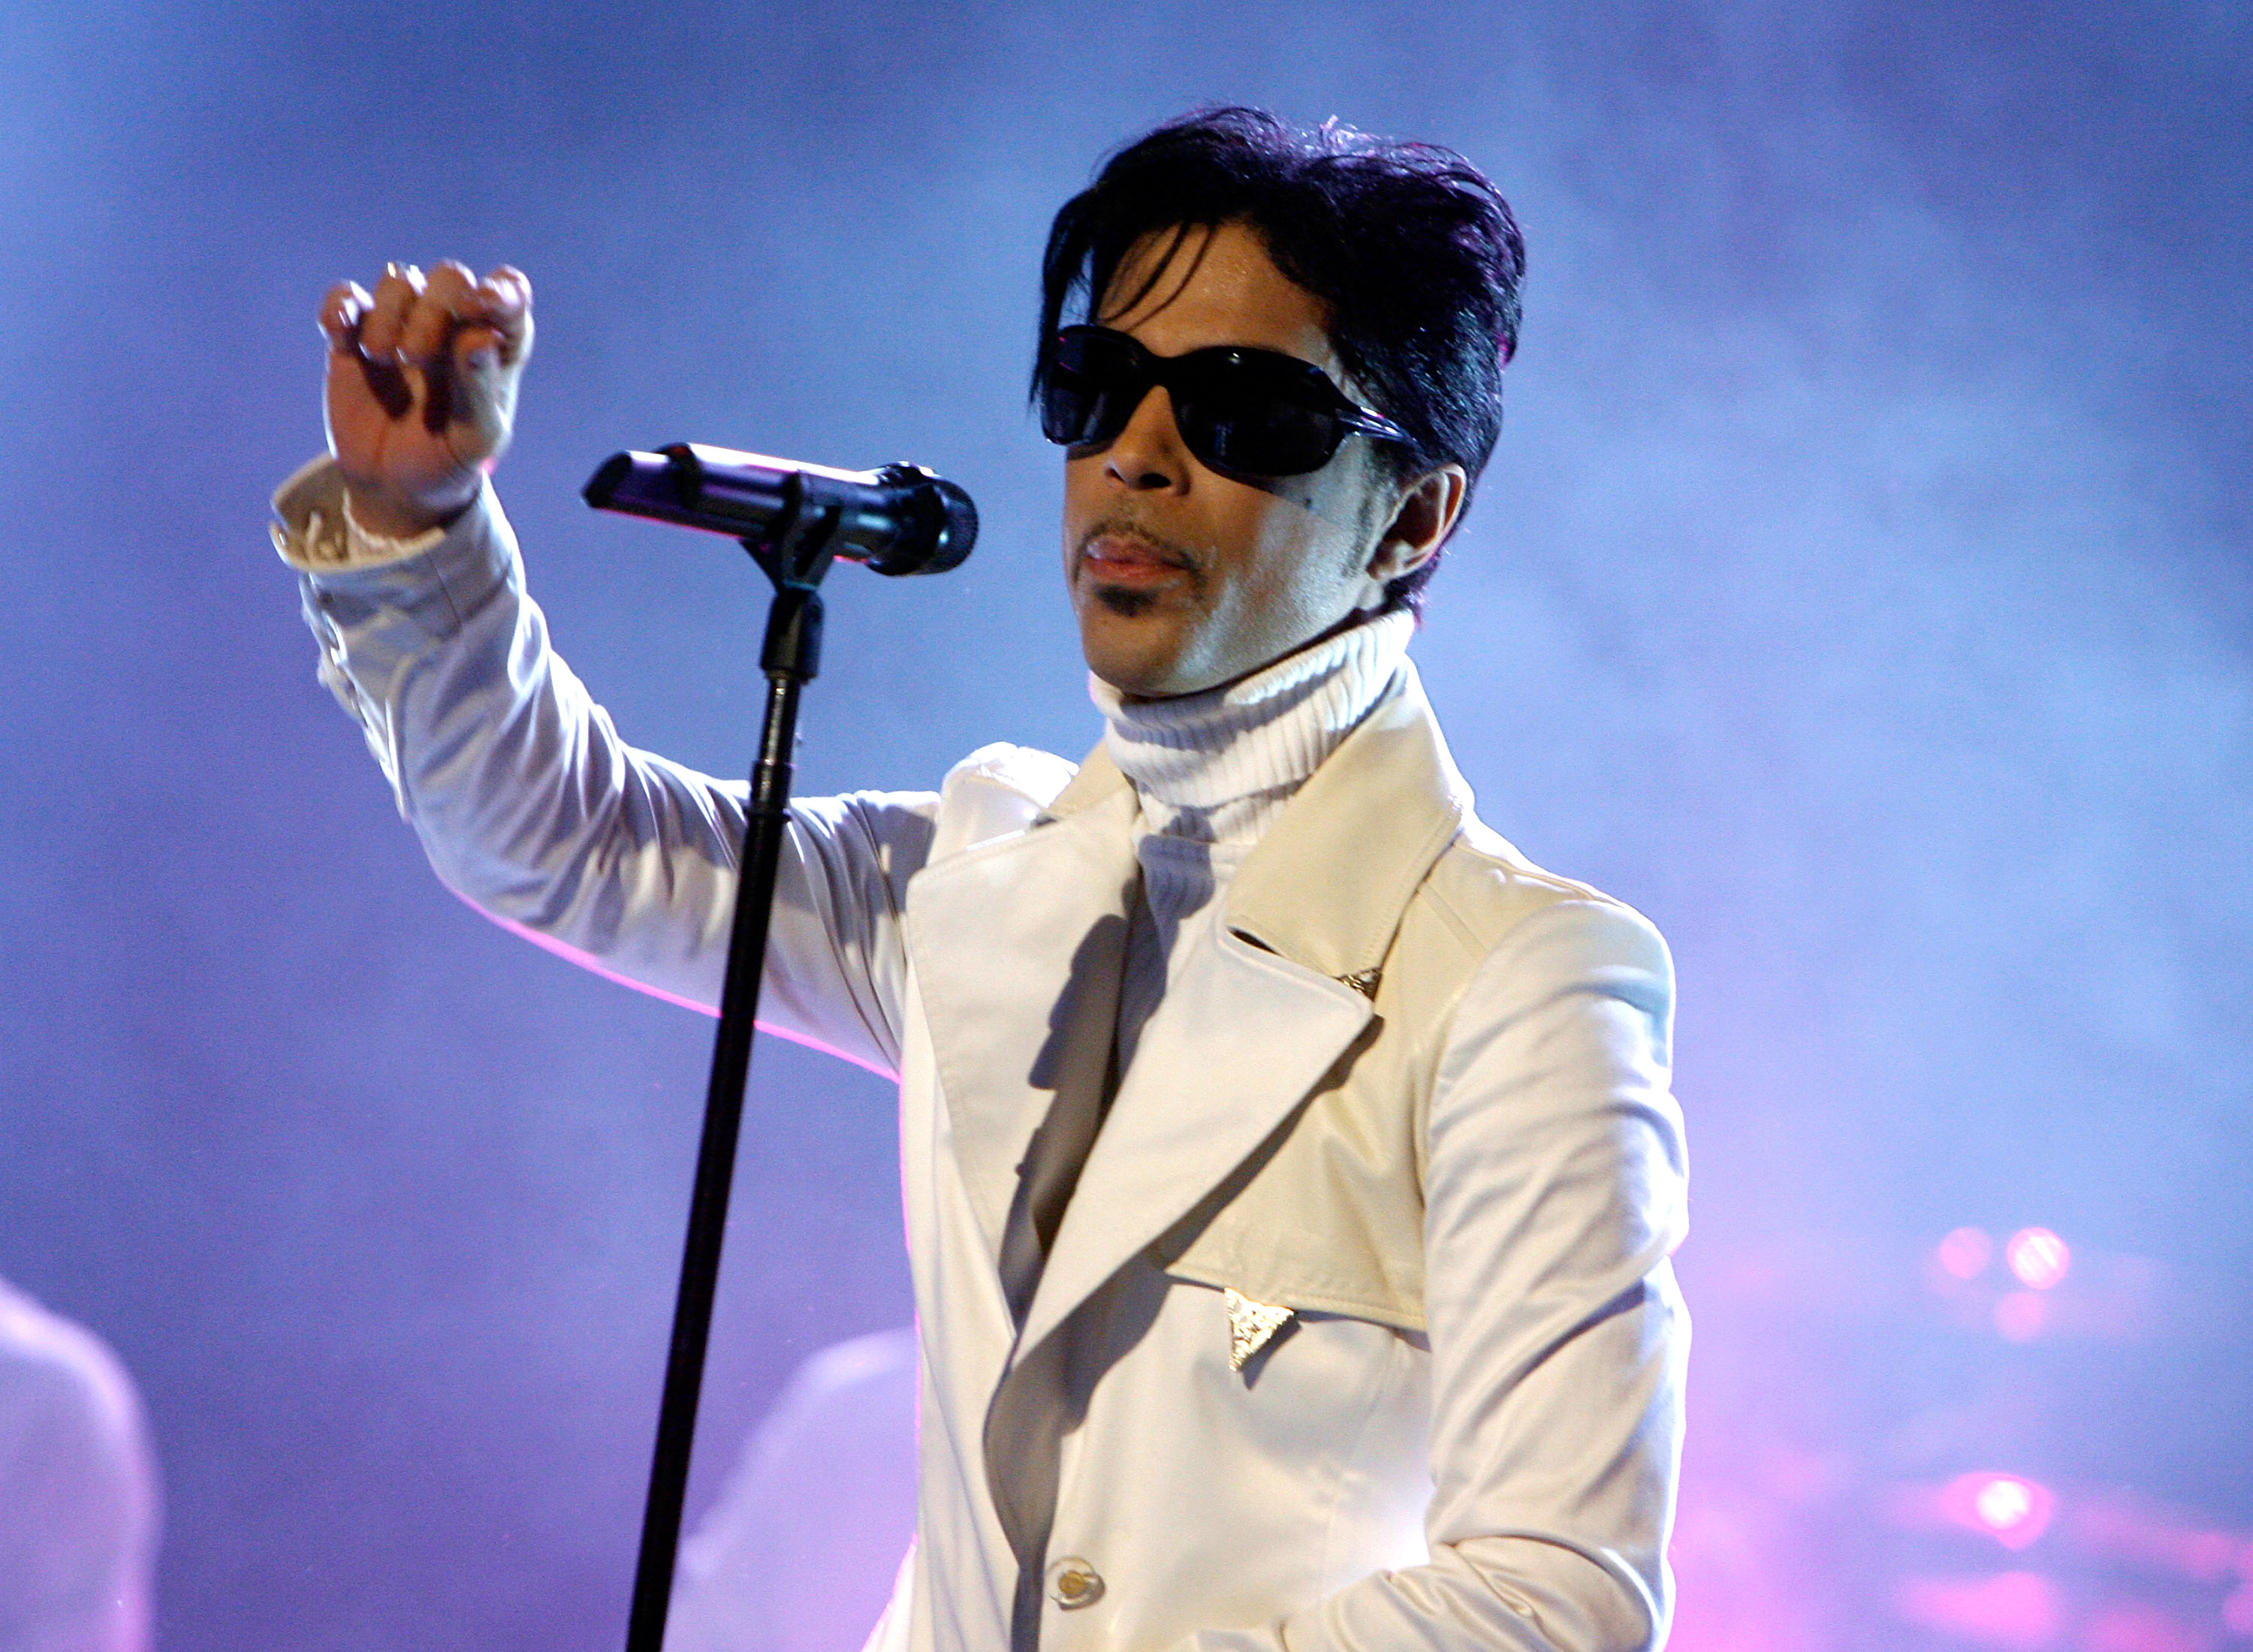 Prince performs during the 2007 NCLR ALMA Awards held at the Pasadena Civic Auditorium on June 1, 2007. (Credit: Getty Images)